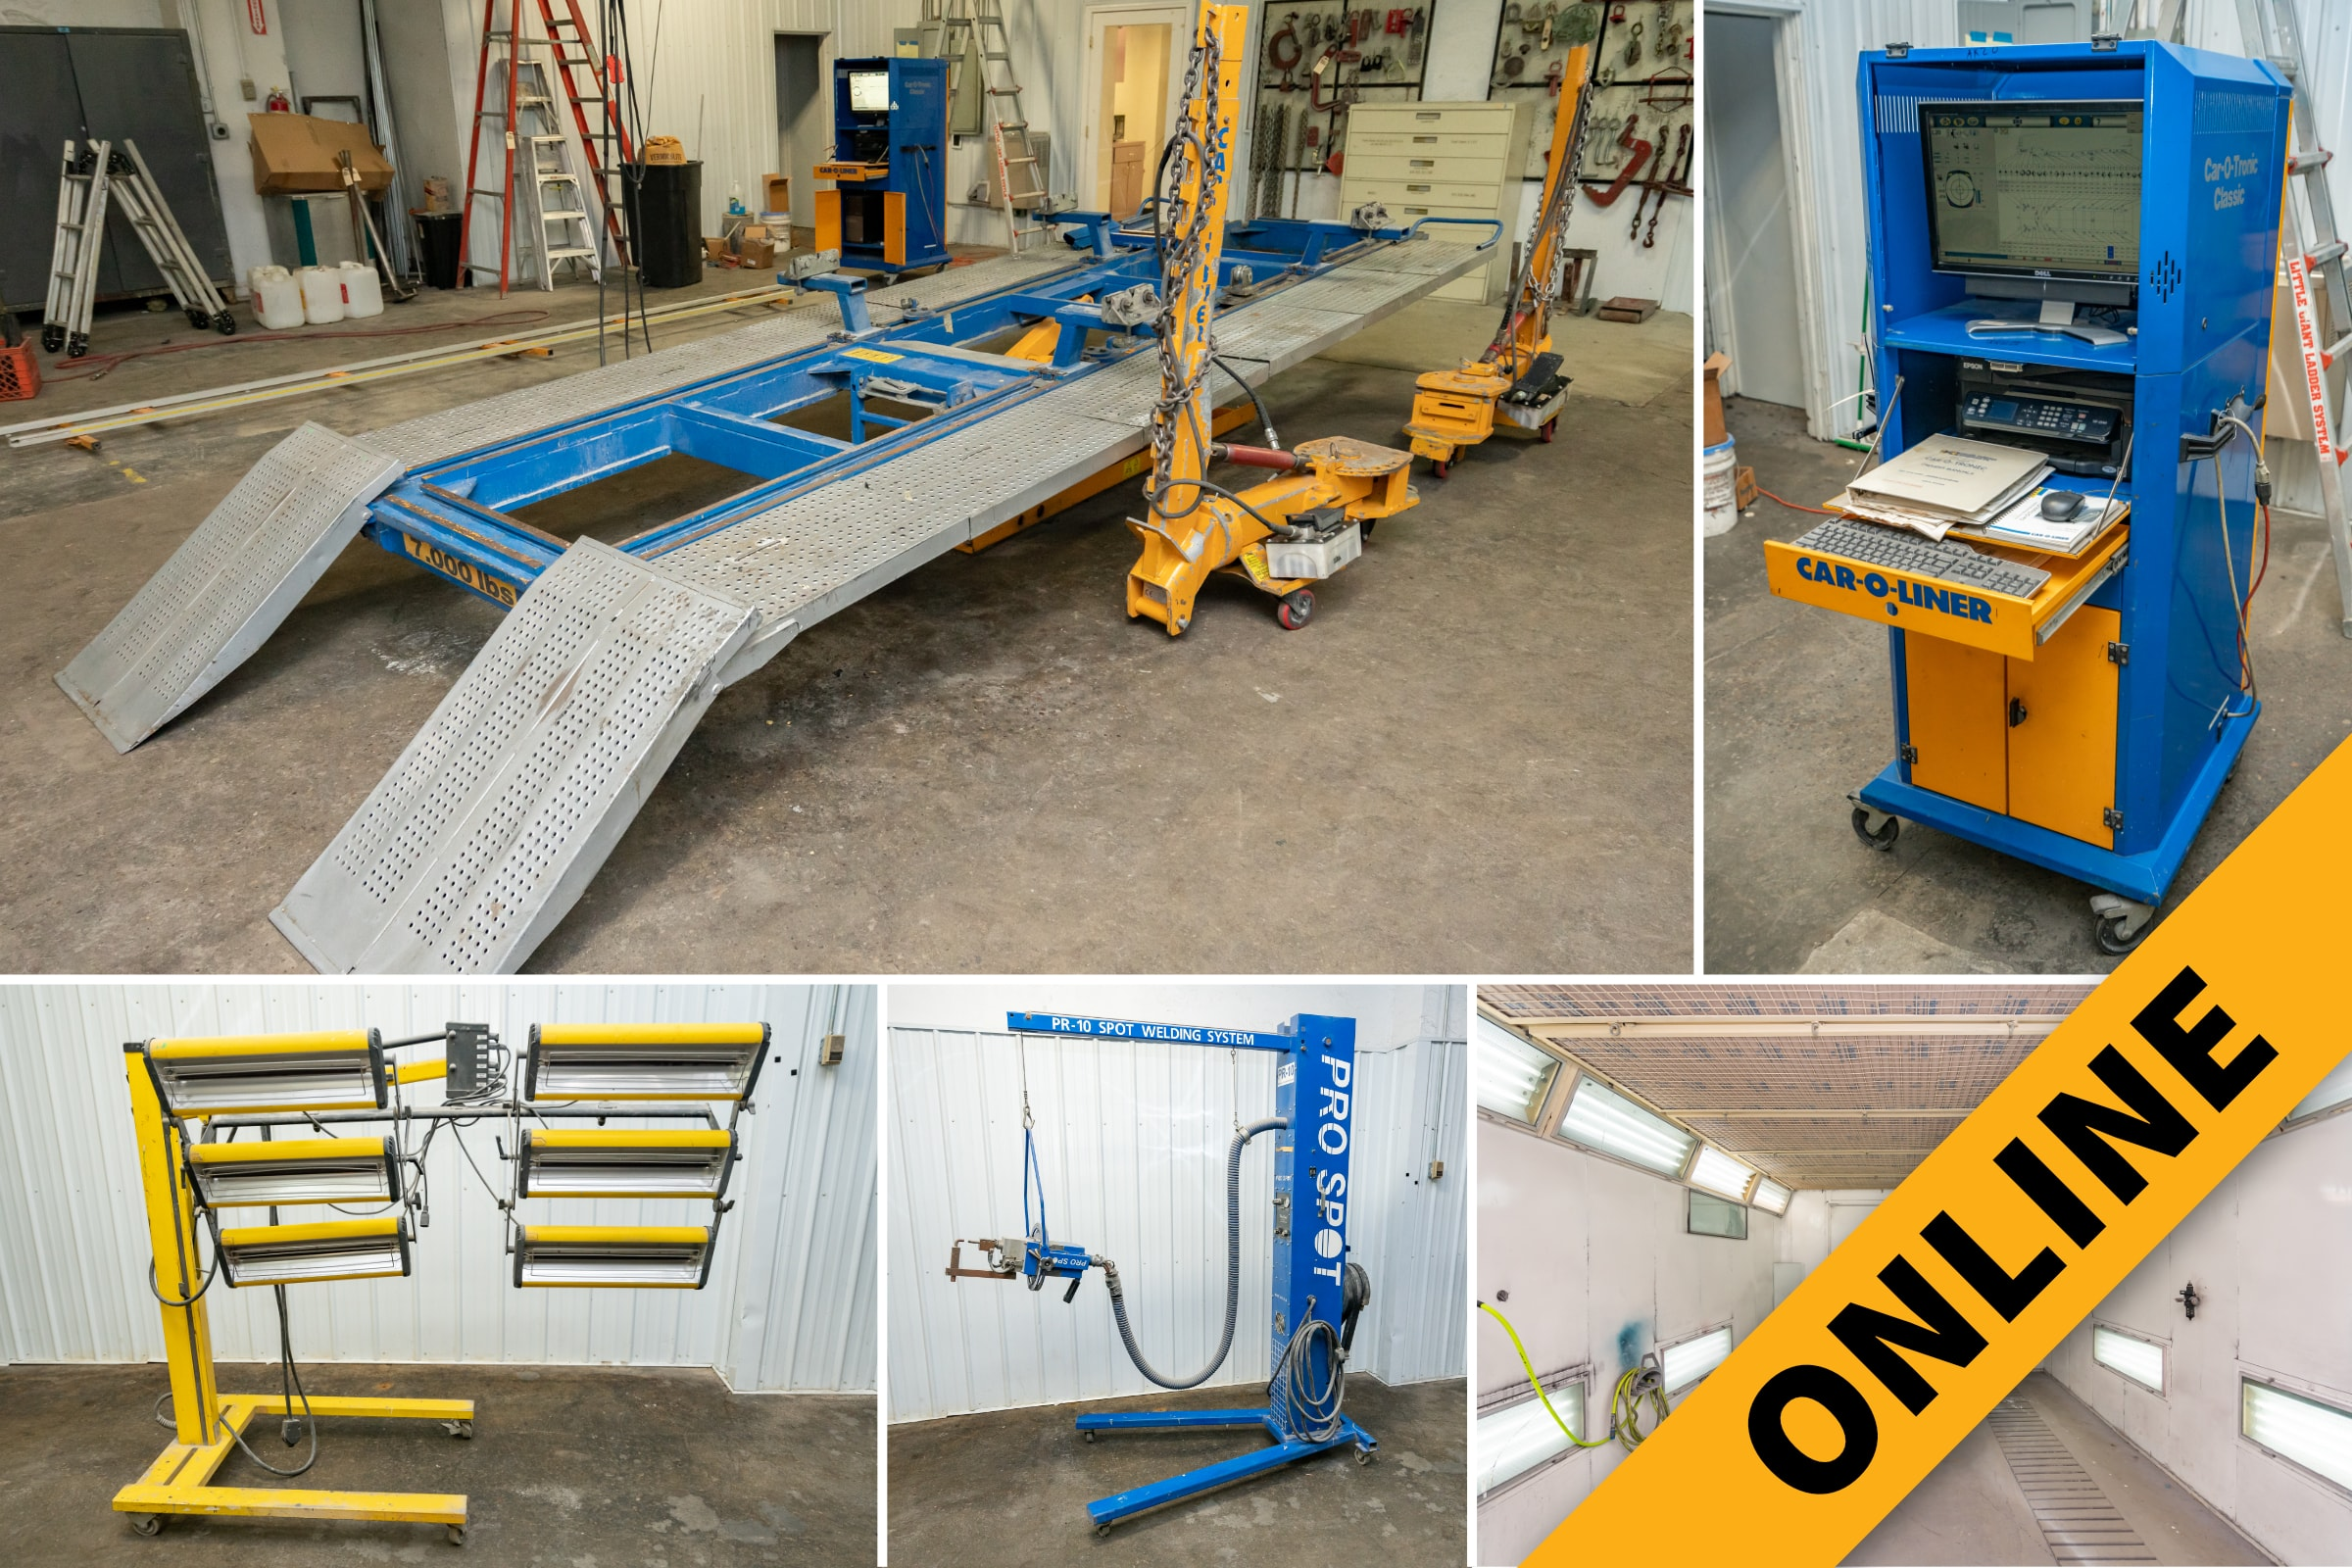 Body Shop Equipment Online Auction